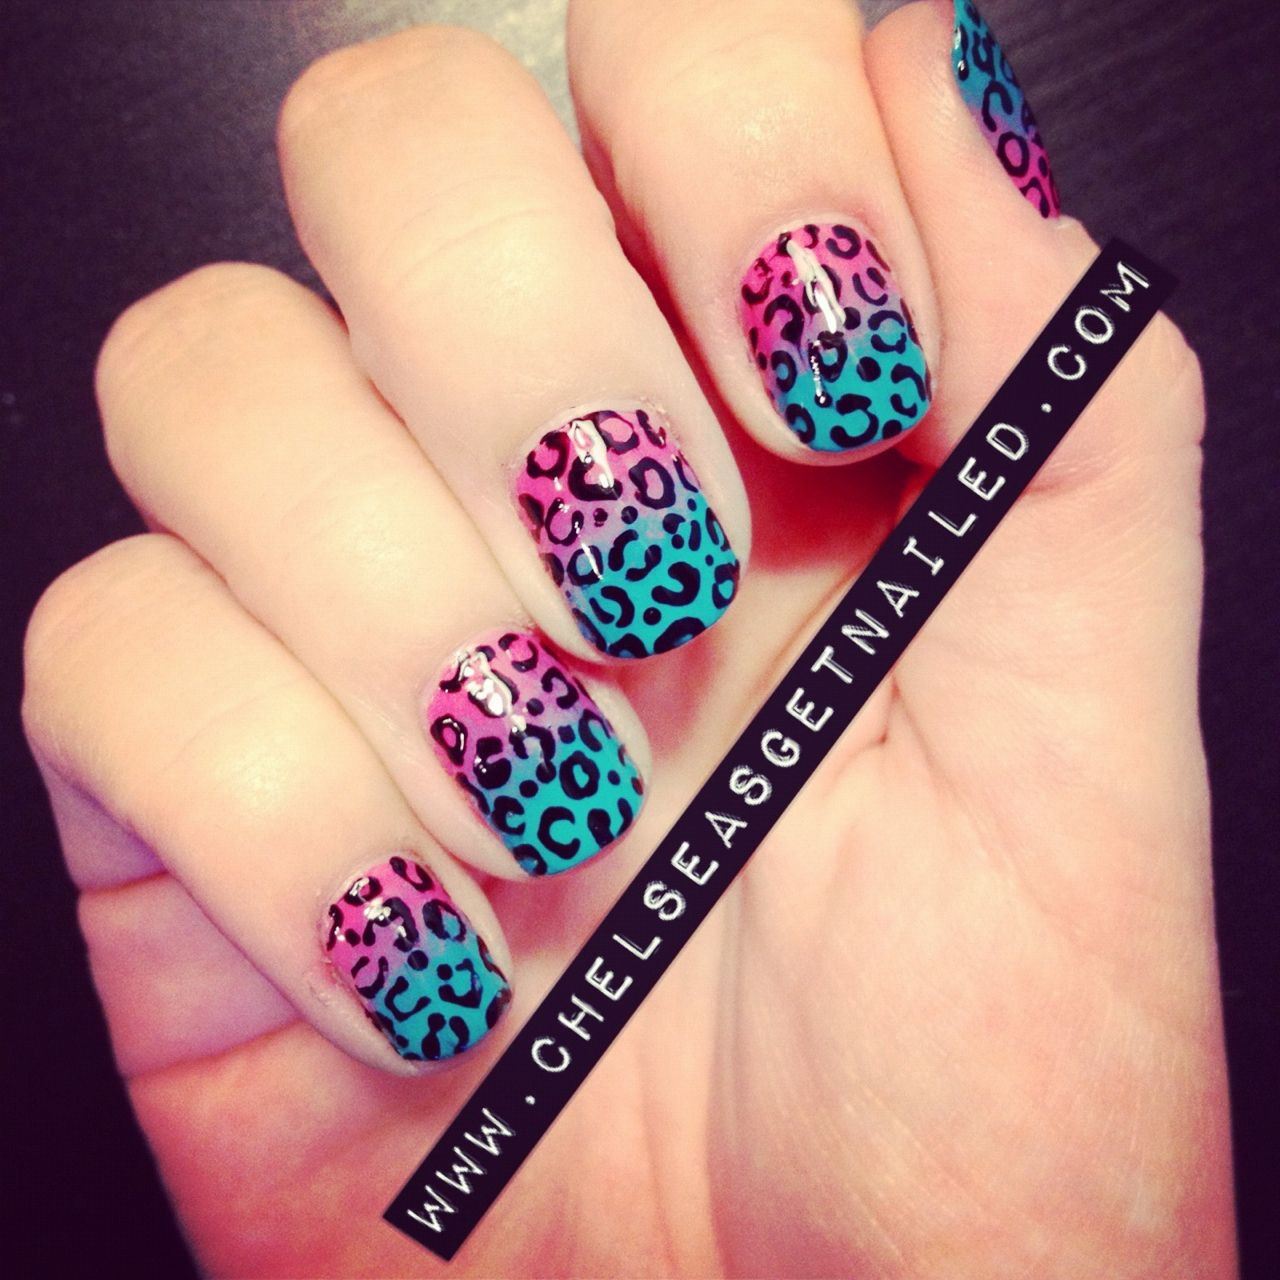 Leopard Print What I Used Essie Guilty Pleasures Butter London